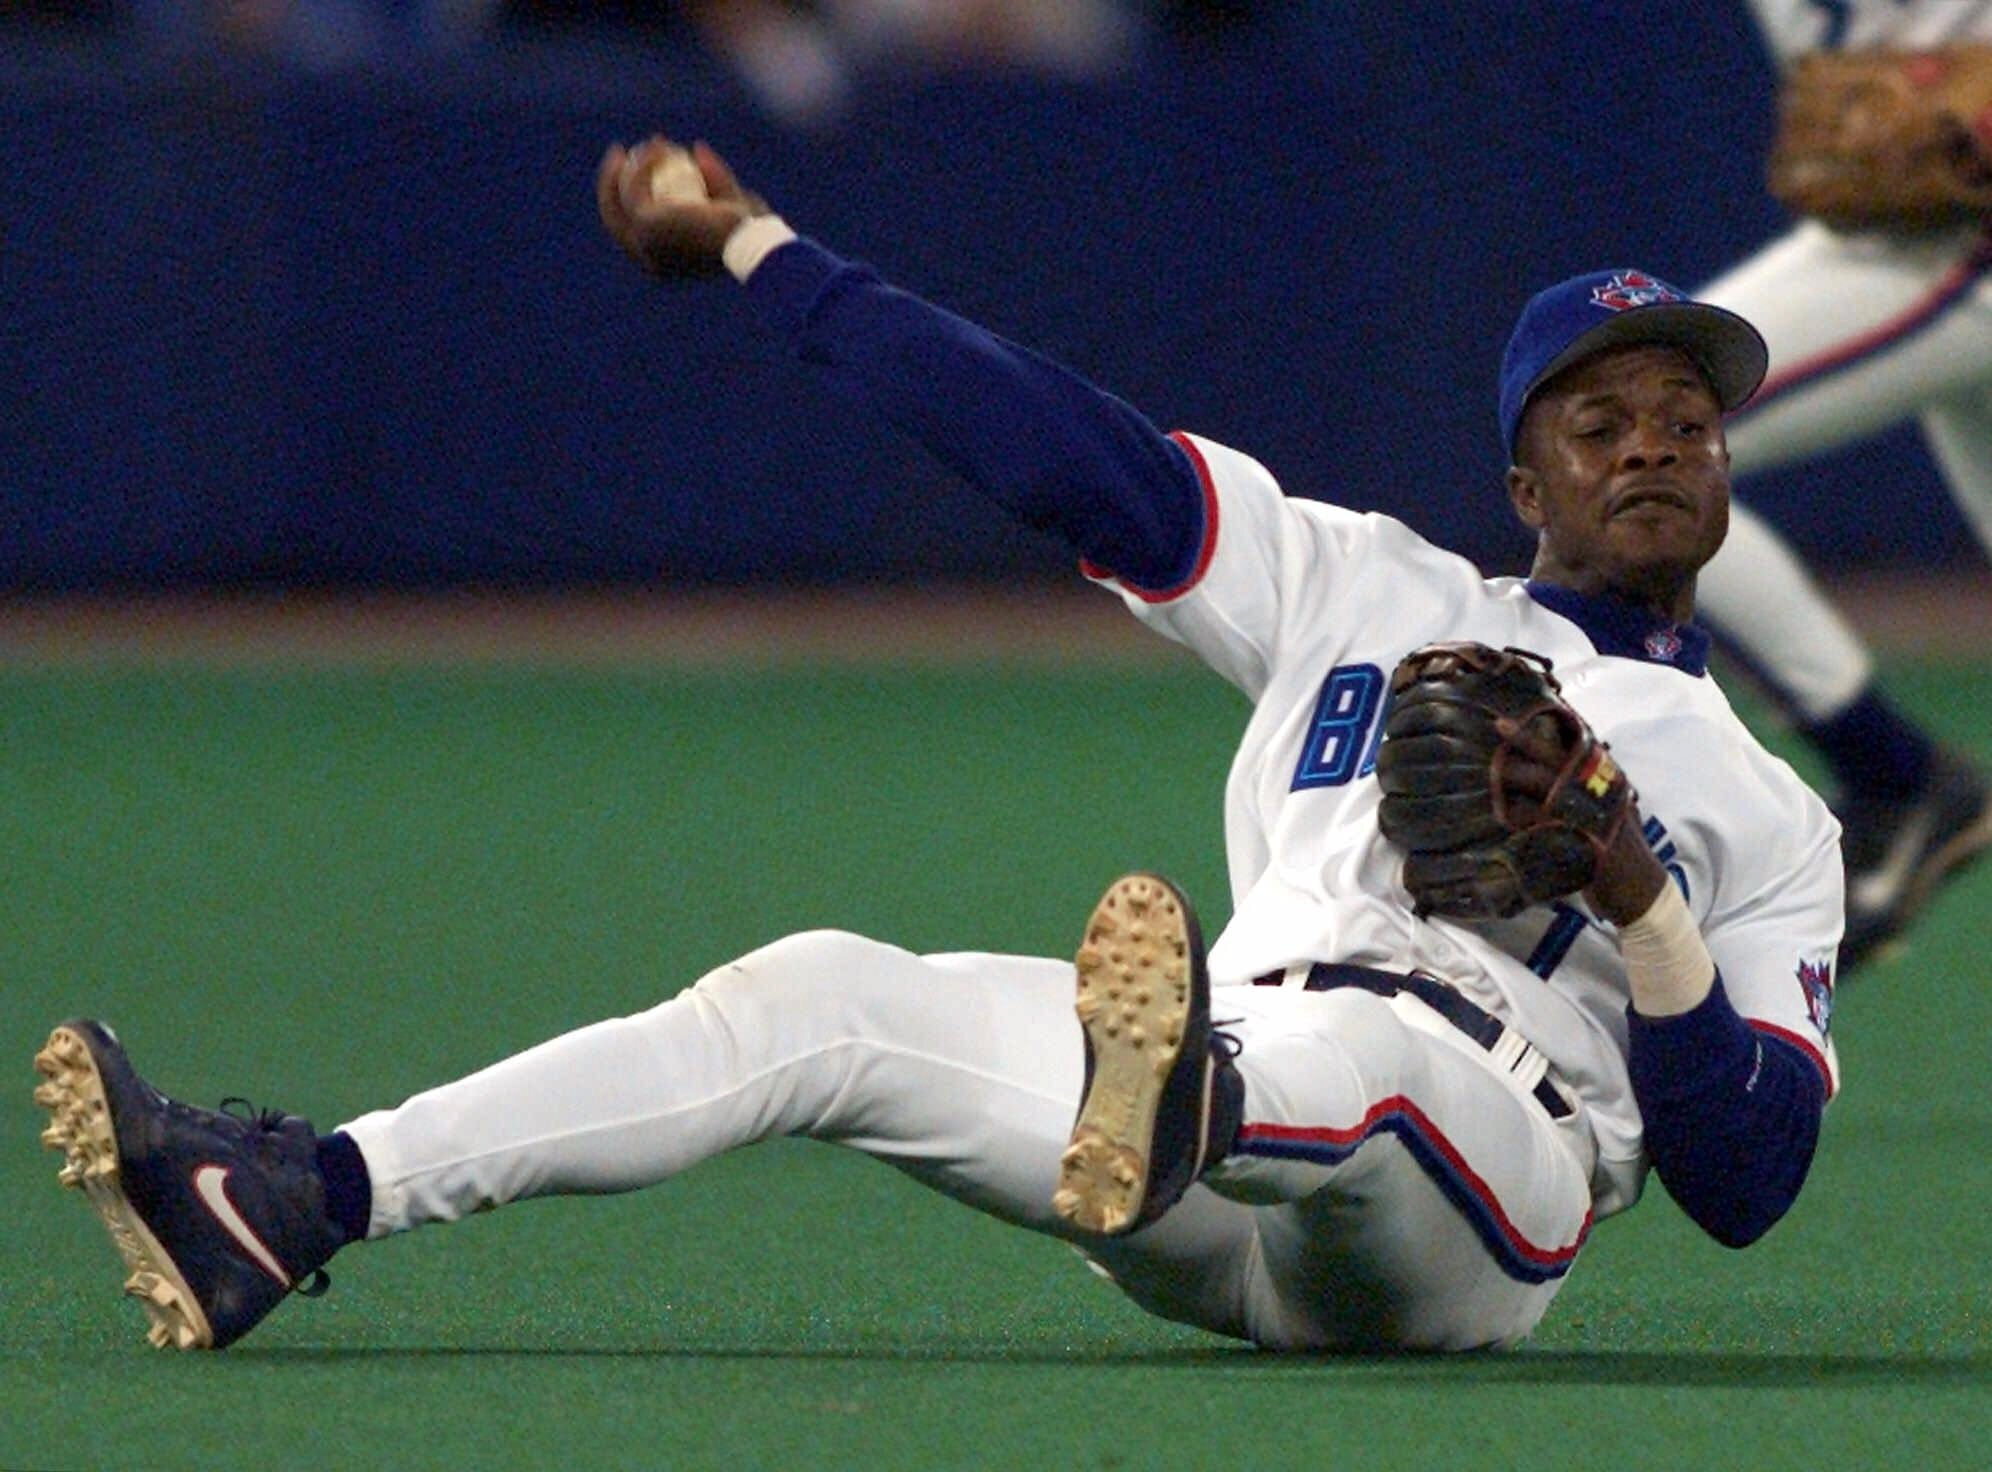 Toronto Blue Jays third baseman Tony Fernandez throws to first as he tumbles to the turf during third-inning AL action against the Chicago White Sox in Toronto, on Sept. 17, 1999.